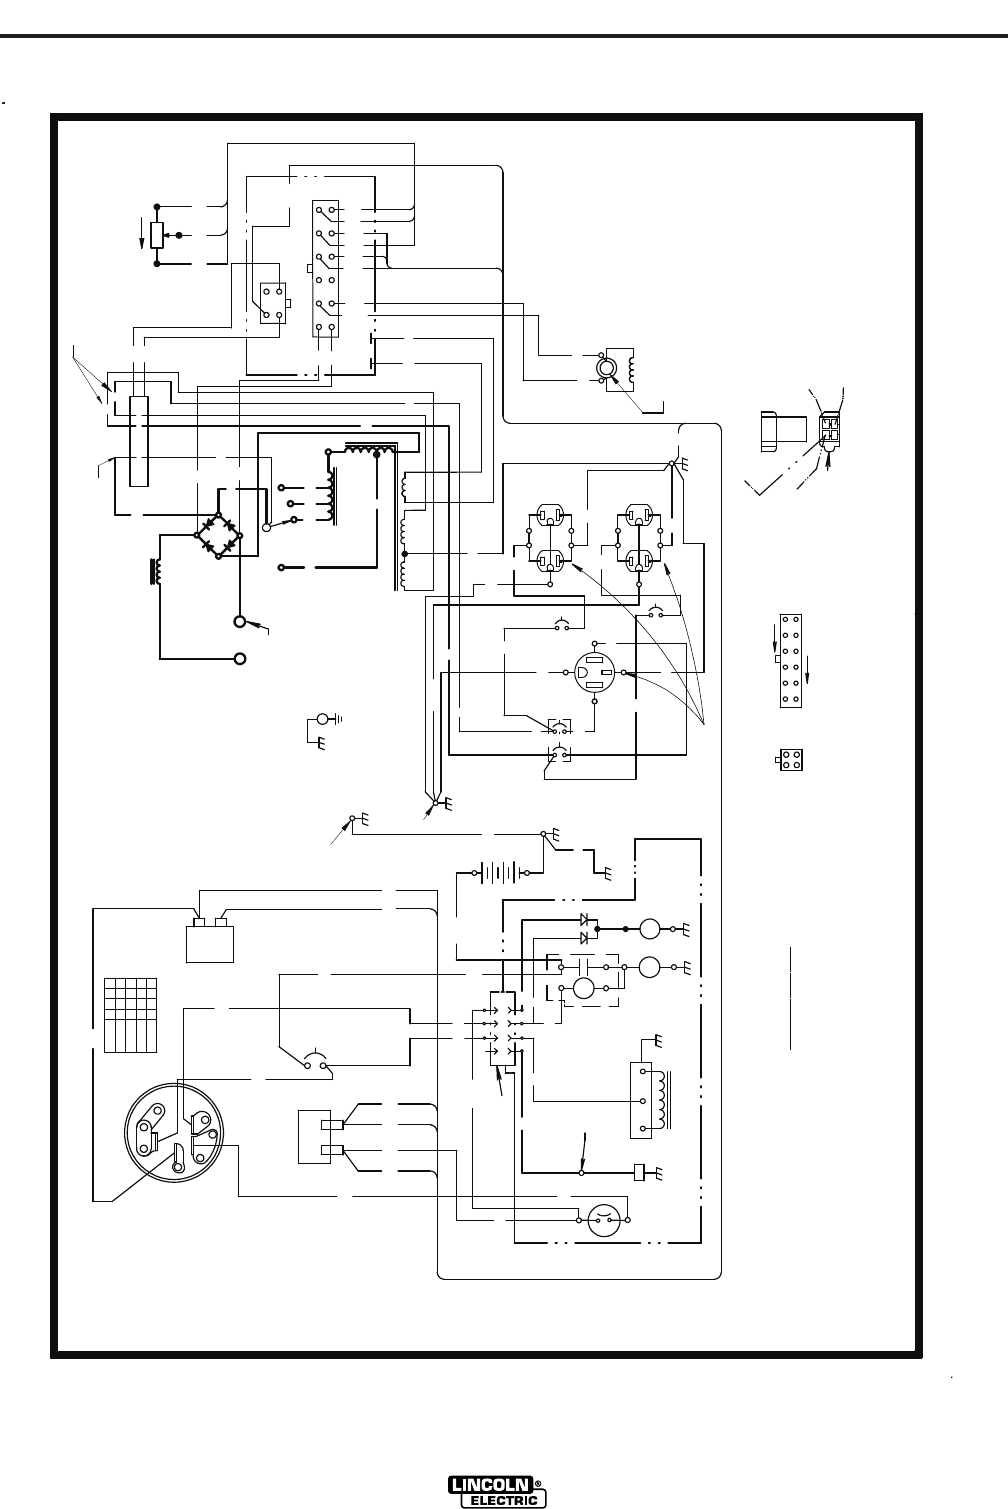 hight resolution of lincoln electric wiring diagram